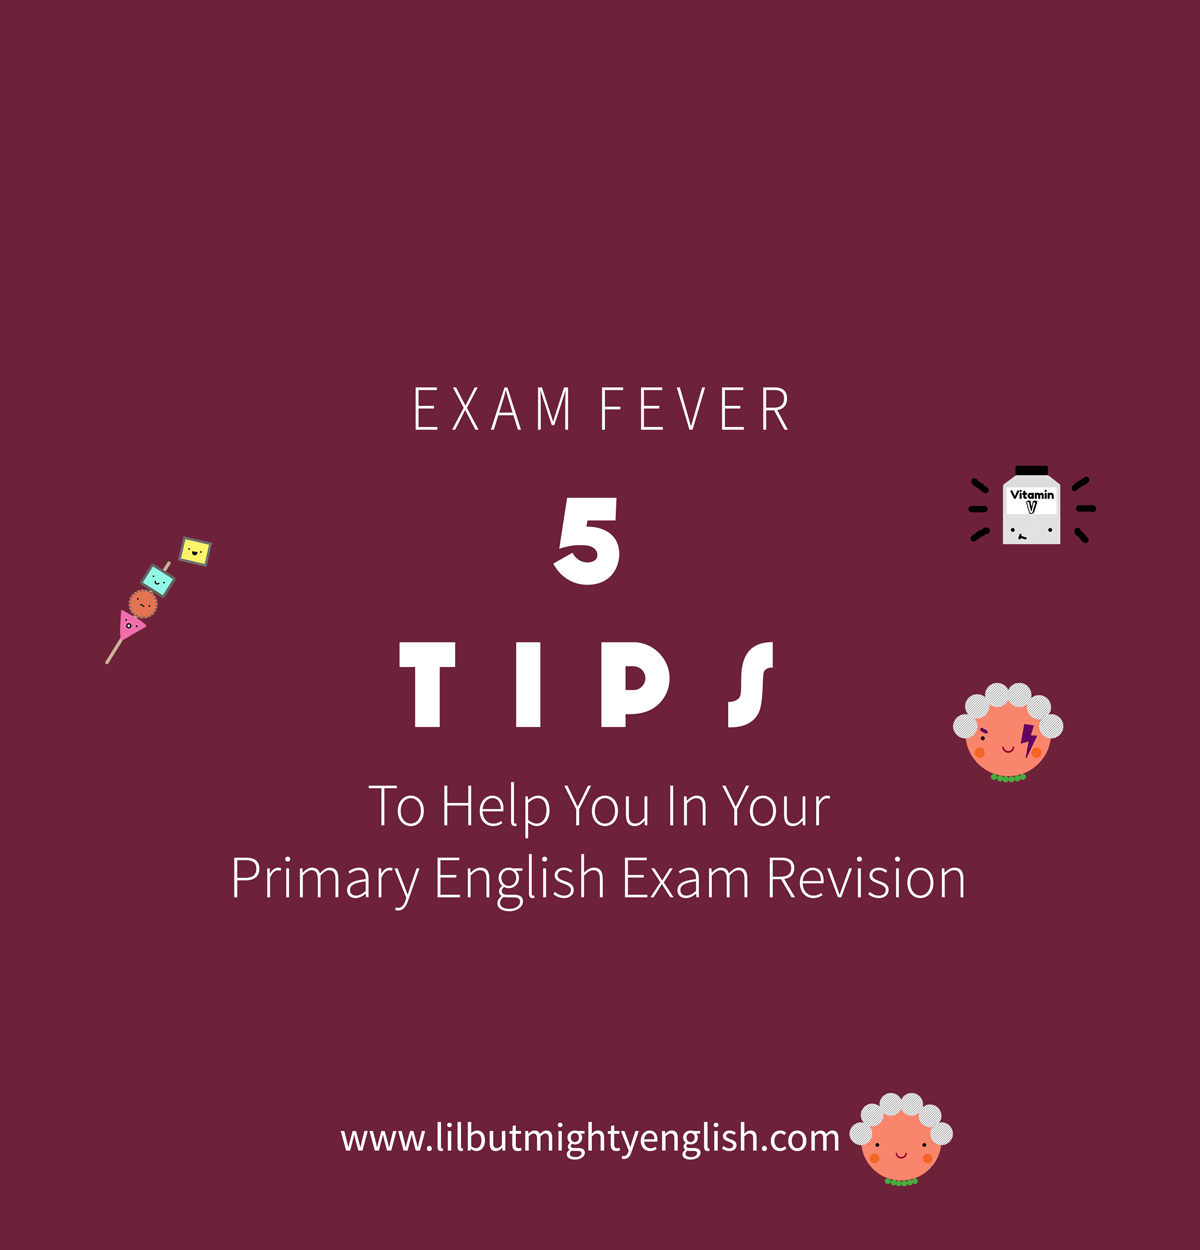 5 Tips to help with your Primary English Exam Revision